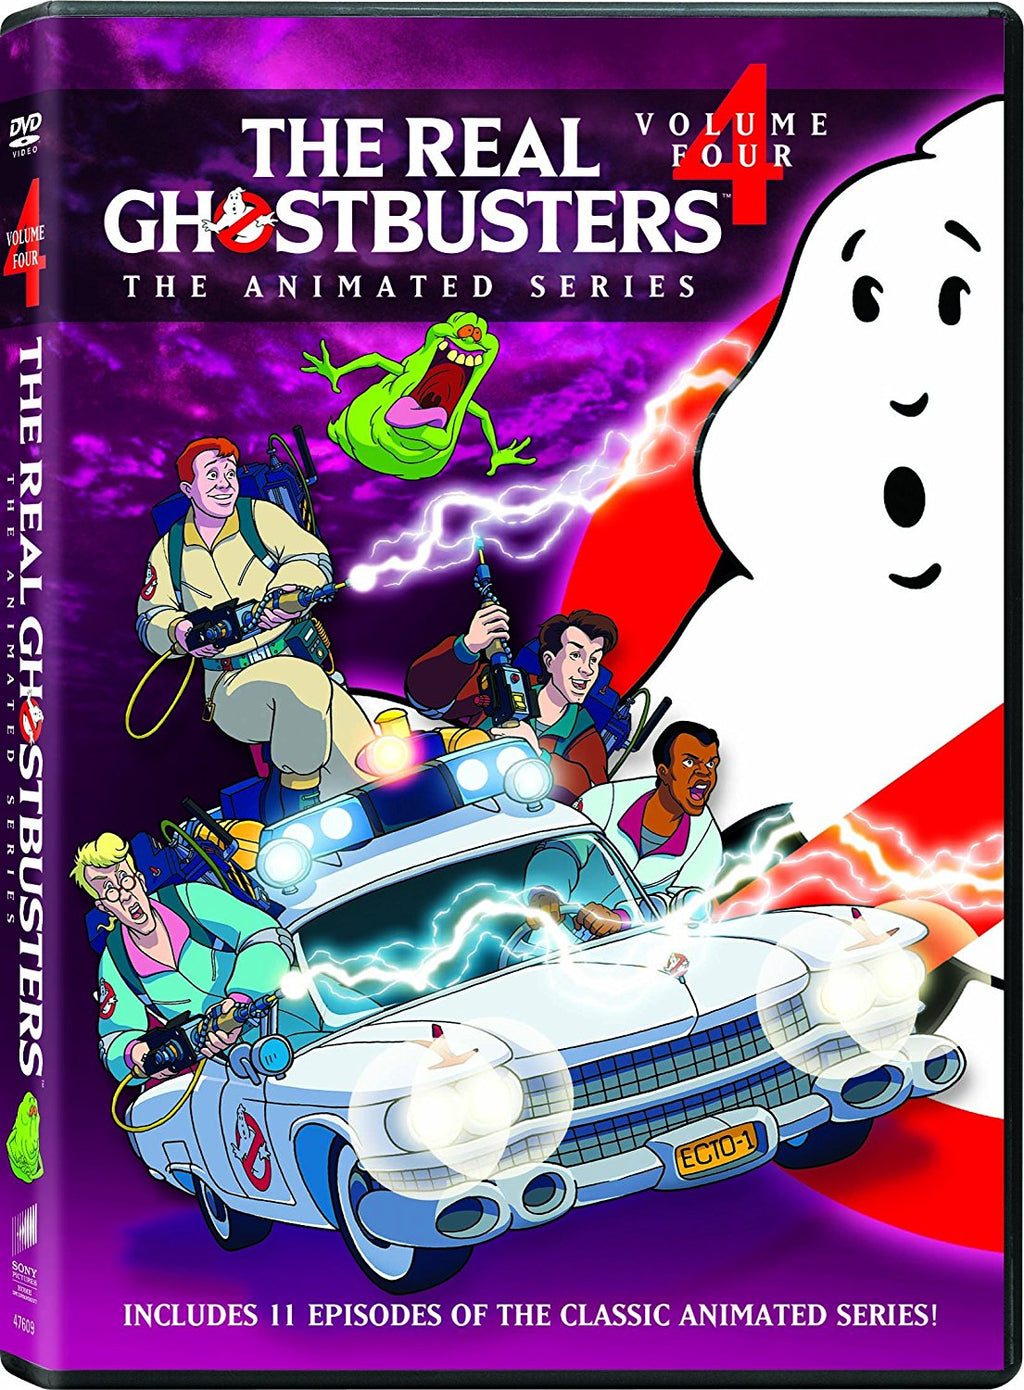 The Real Ghostbusters Vol. 4 DVD